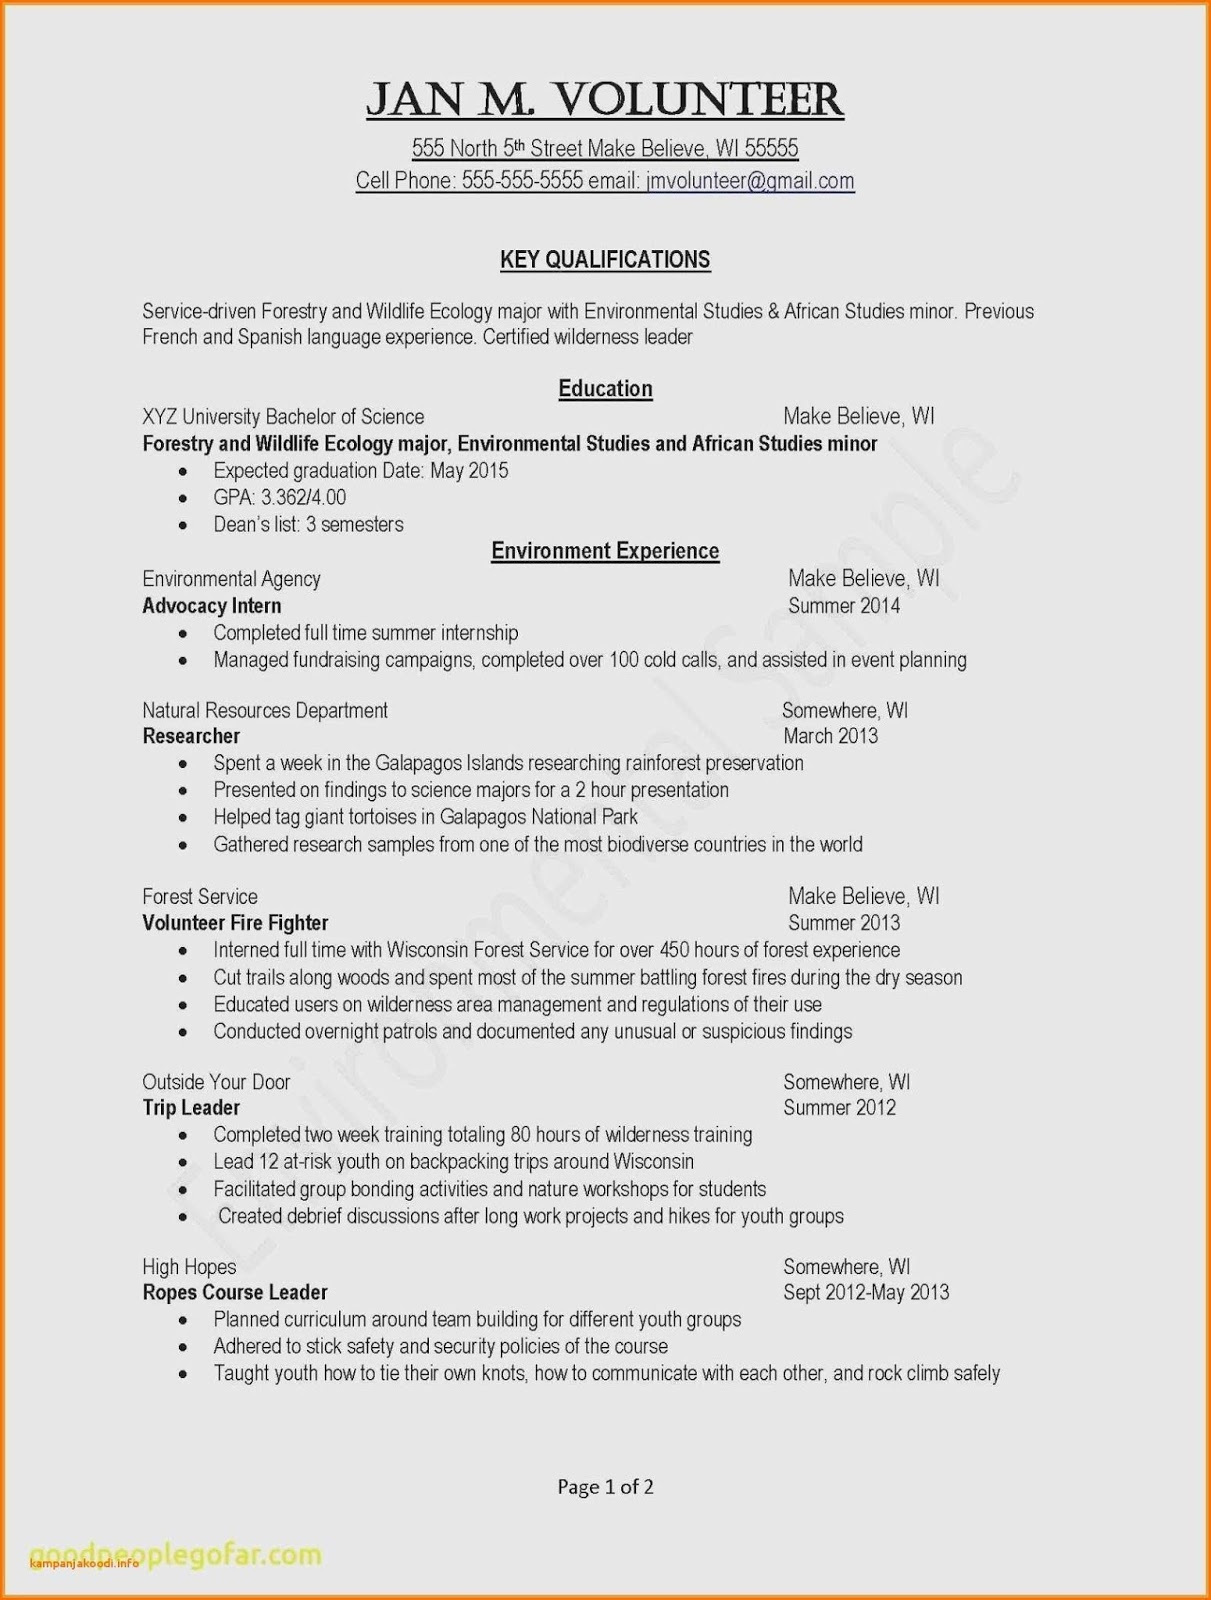 simple resumes examples examples of basic resumes for jobs basic examples of resumes simple resume examples word simple resume examples simple resume examples pdf simple resume summary examples simple resume examples for jobs simple resume examples australia simple resume examples 2018 simple resume examples for students simple resume examples 2019